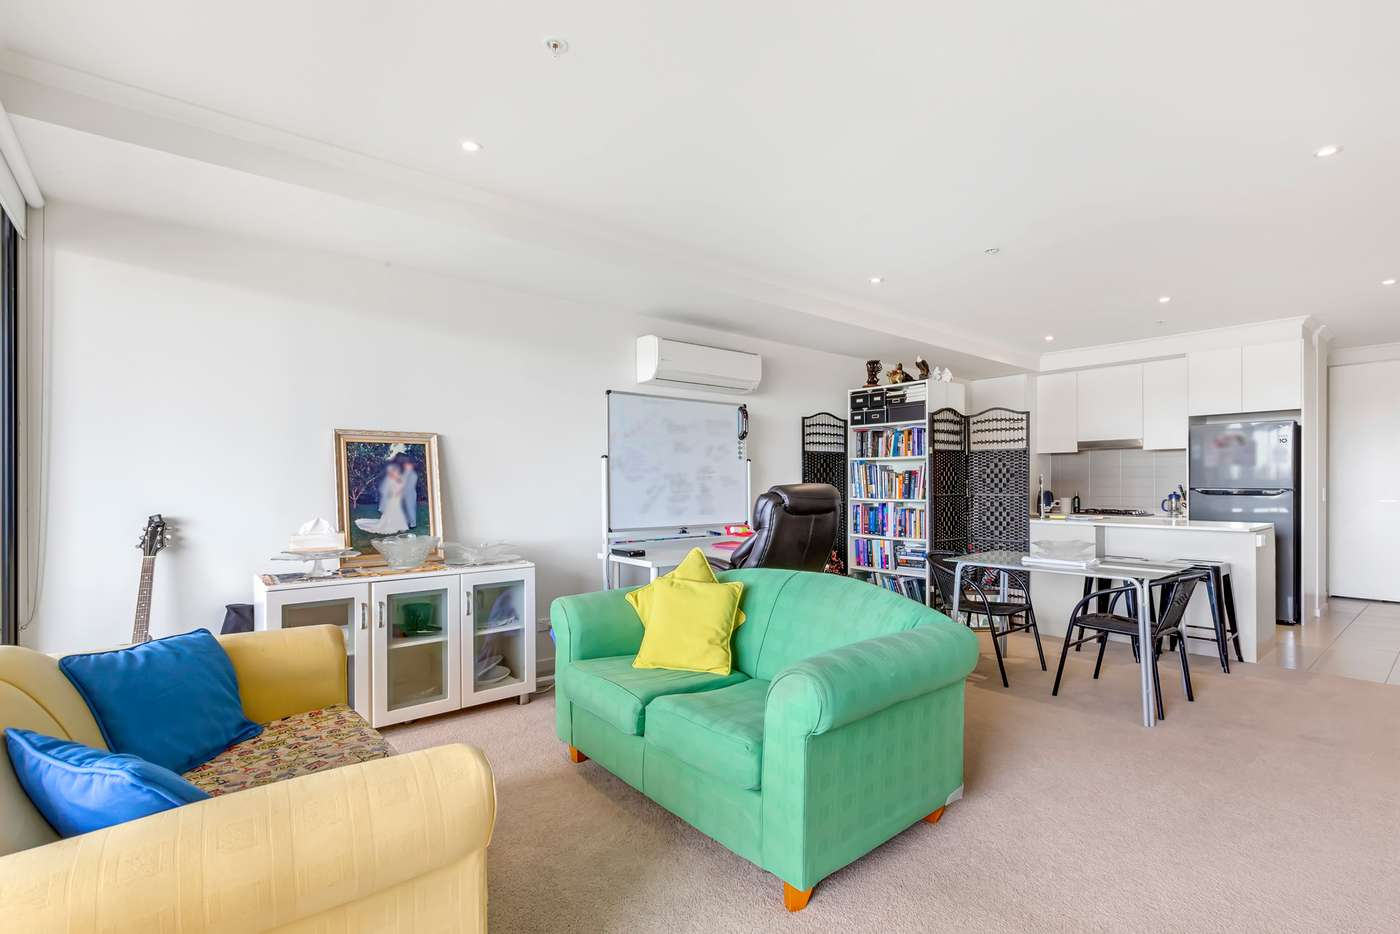 Sixth view of Homely apartment listing, 13/76 The Esplanade, Caroline Springs VIC 3023